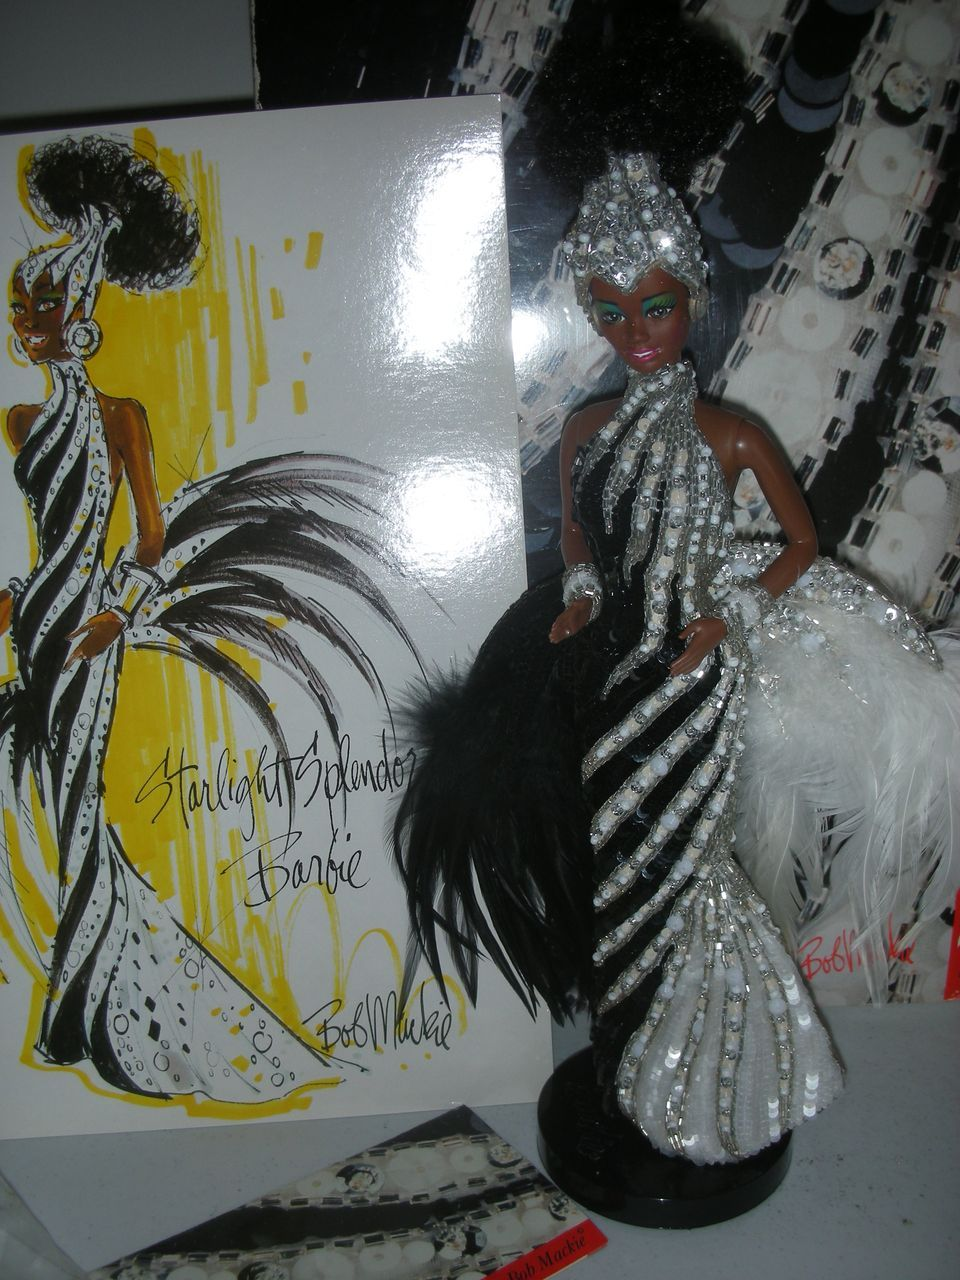 Vintage Starlight Splendor Barbie Doll by Bob Mackie